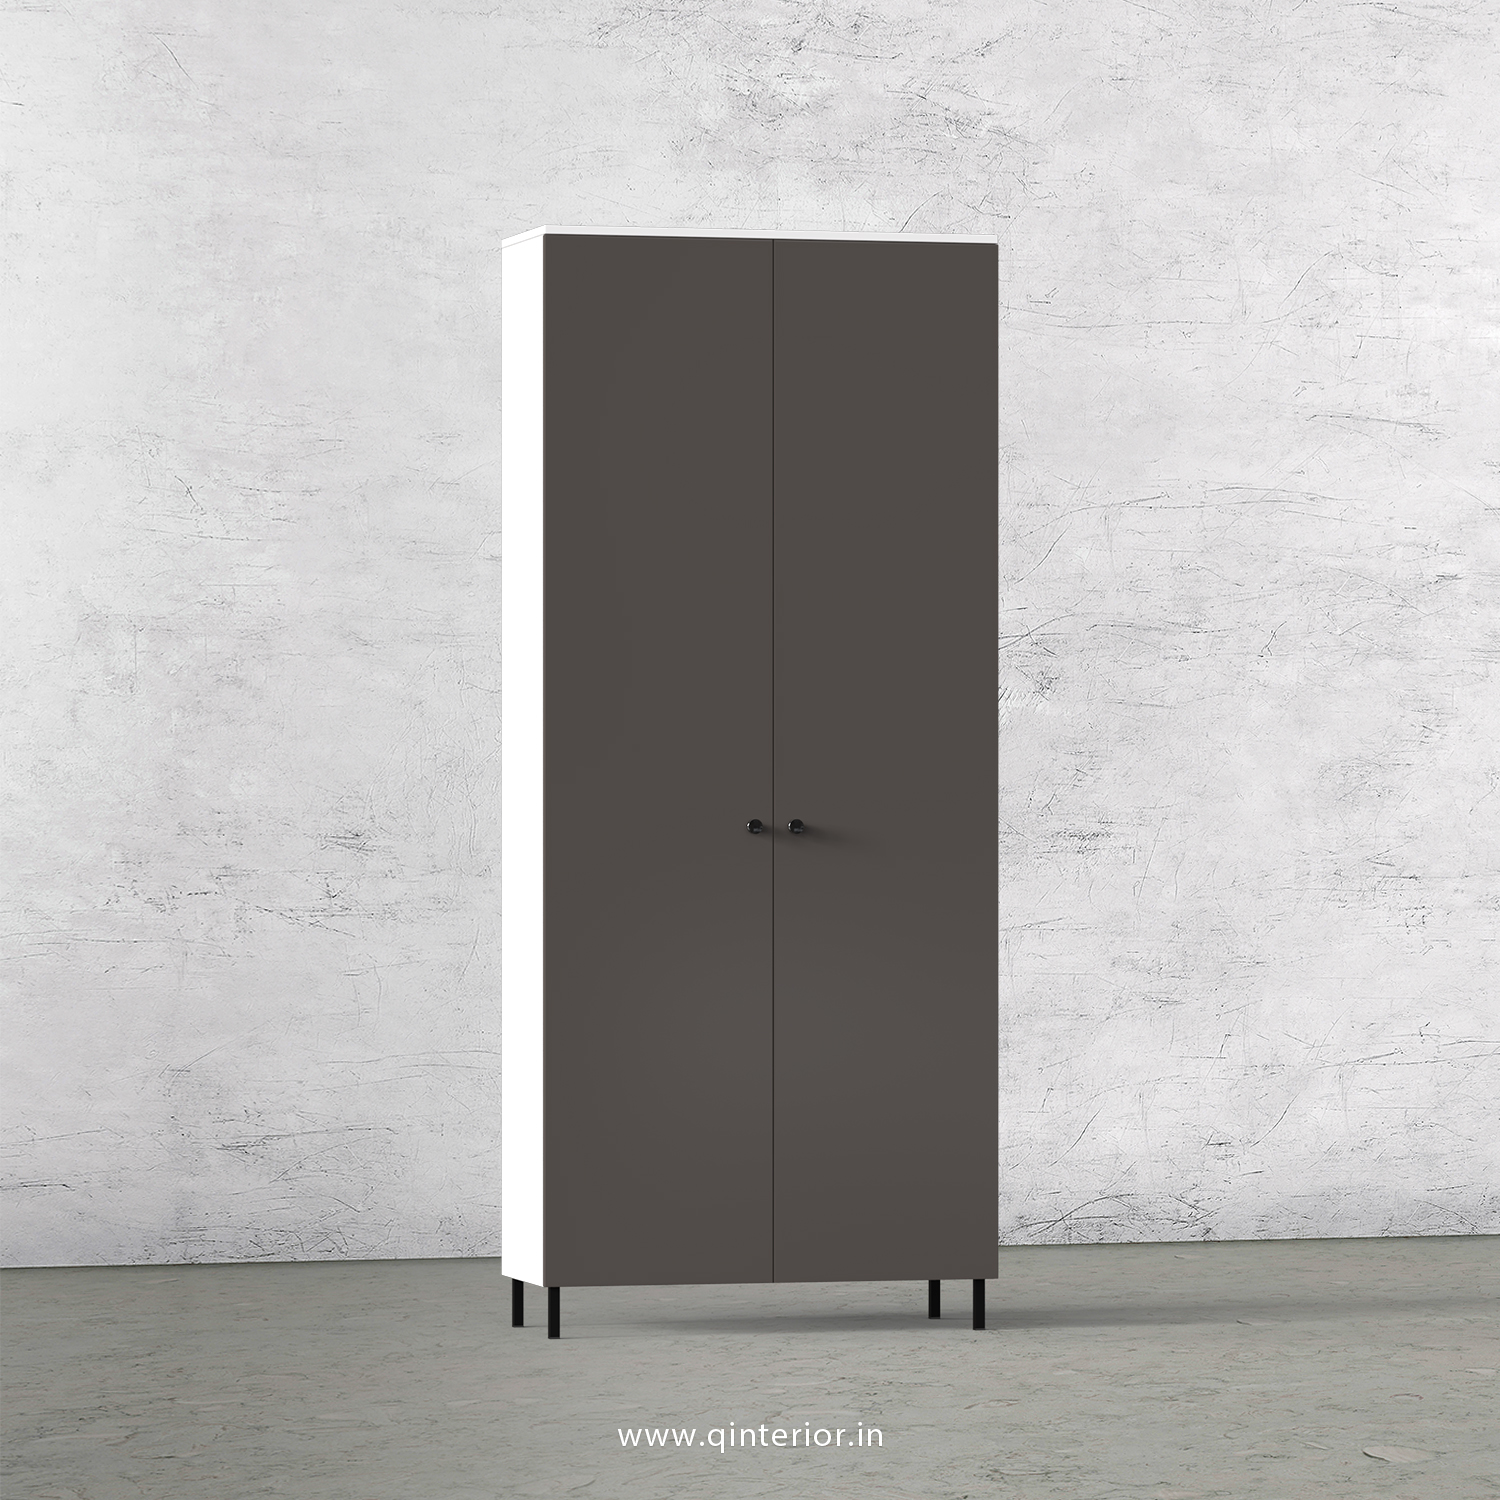 Lambent 2 Door Wardrobe in White and Slate Finish – DWRD001 C16